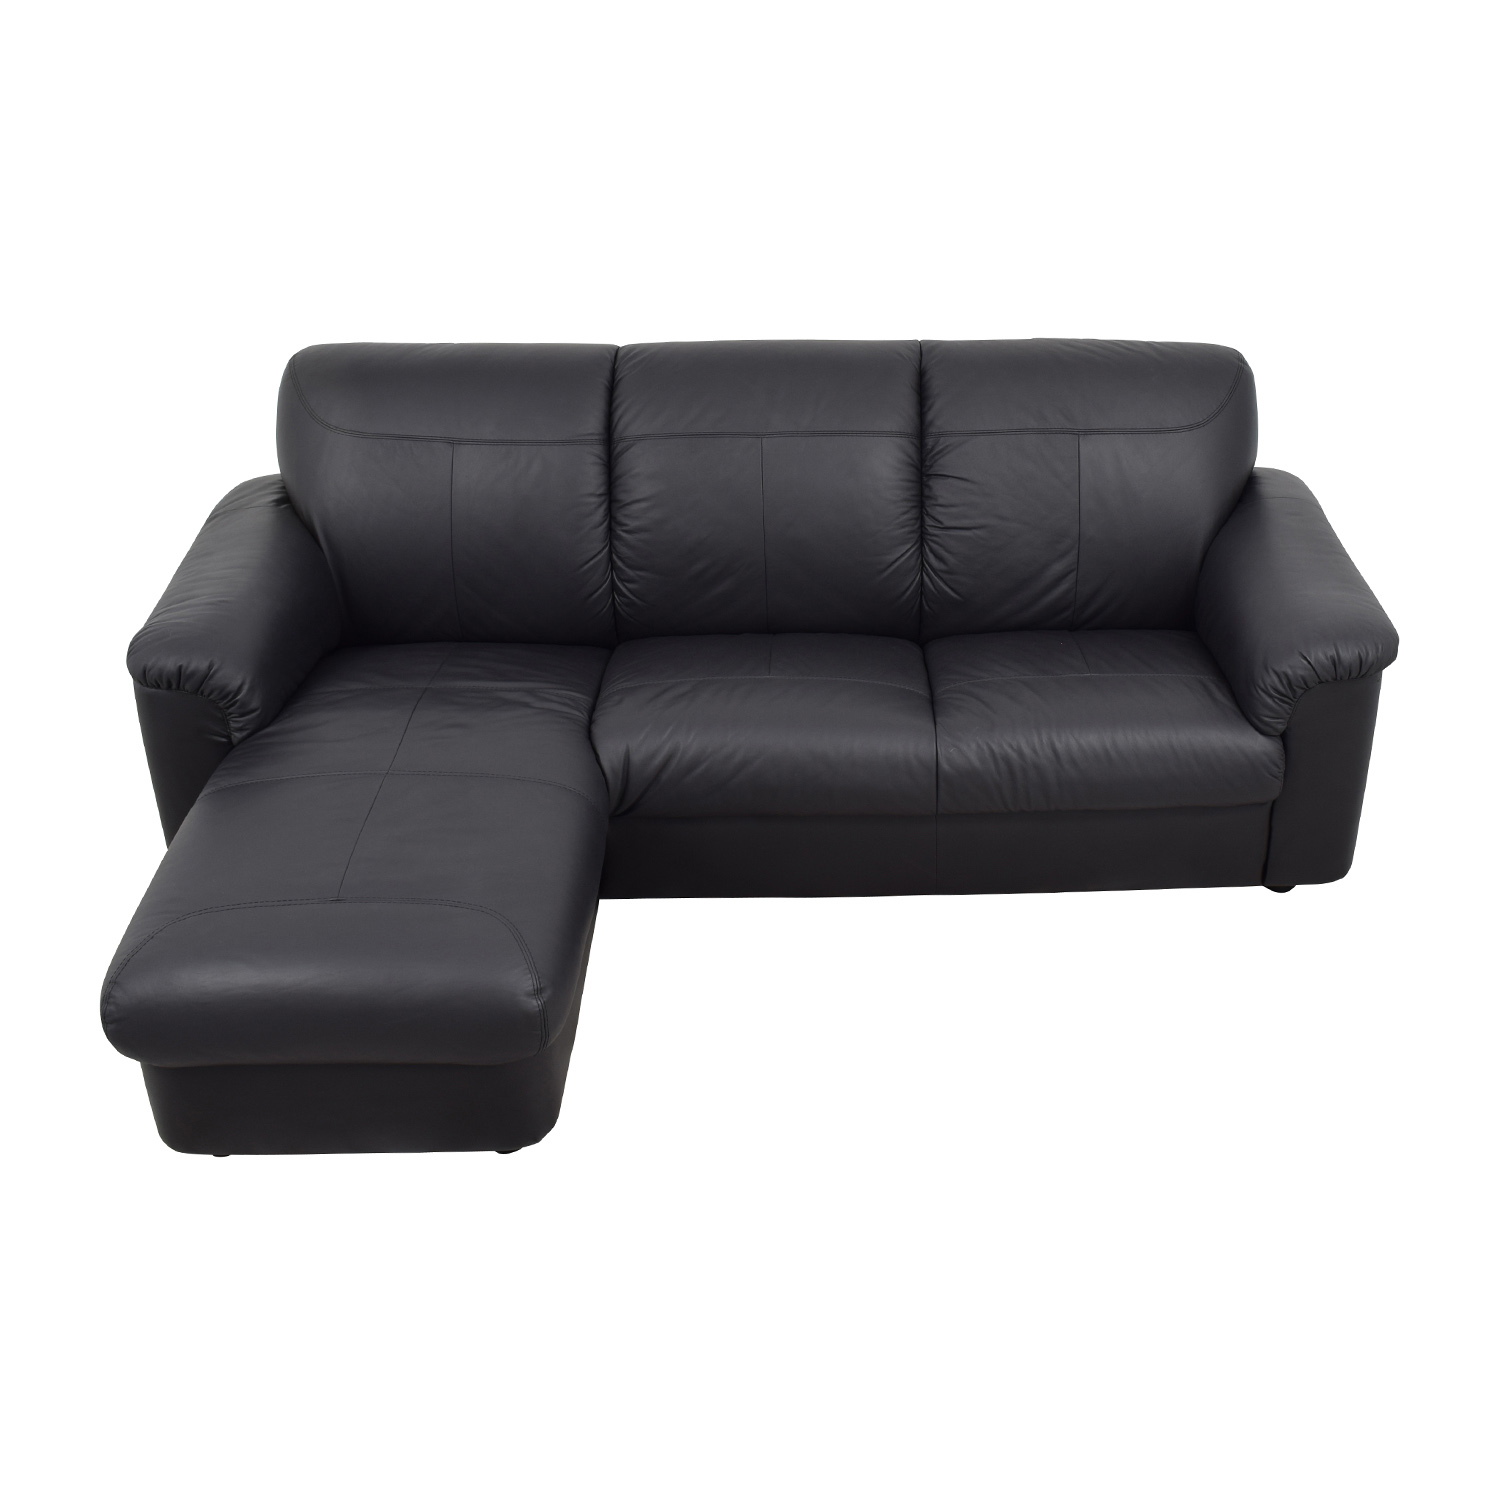 41 Off Ikea Black 3 Piece Leather Sectional Sofas